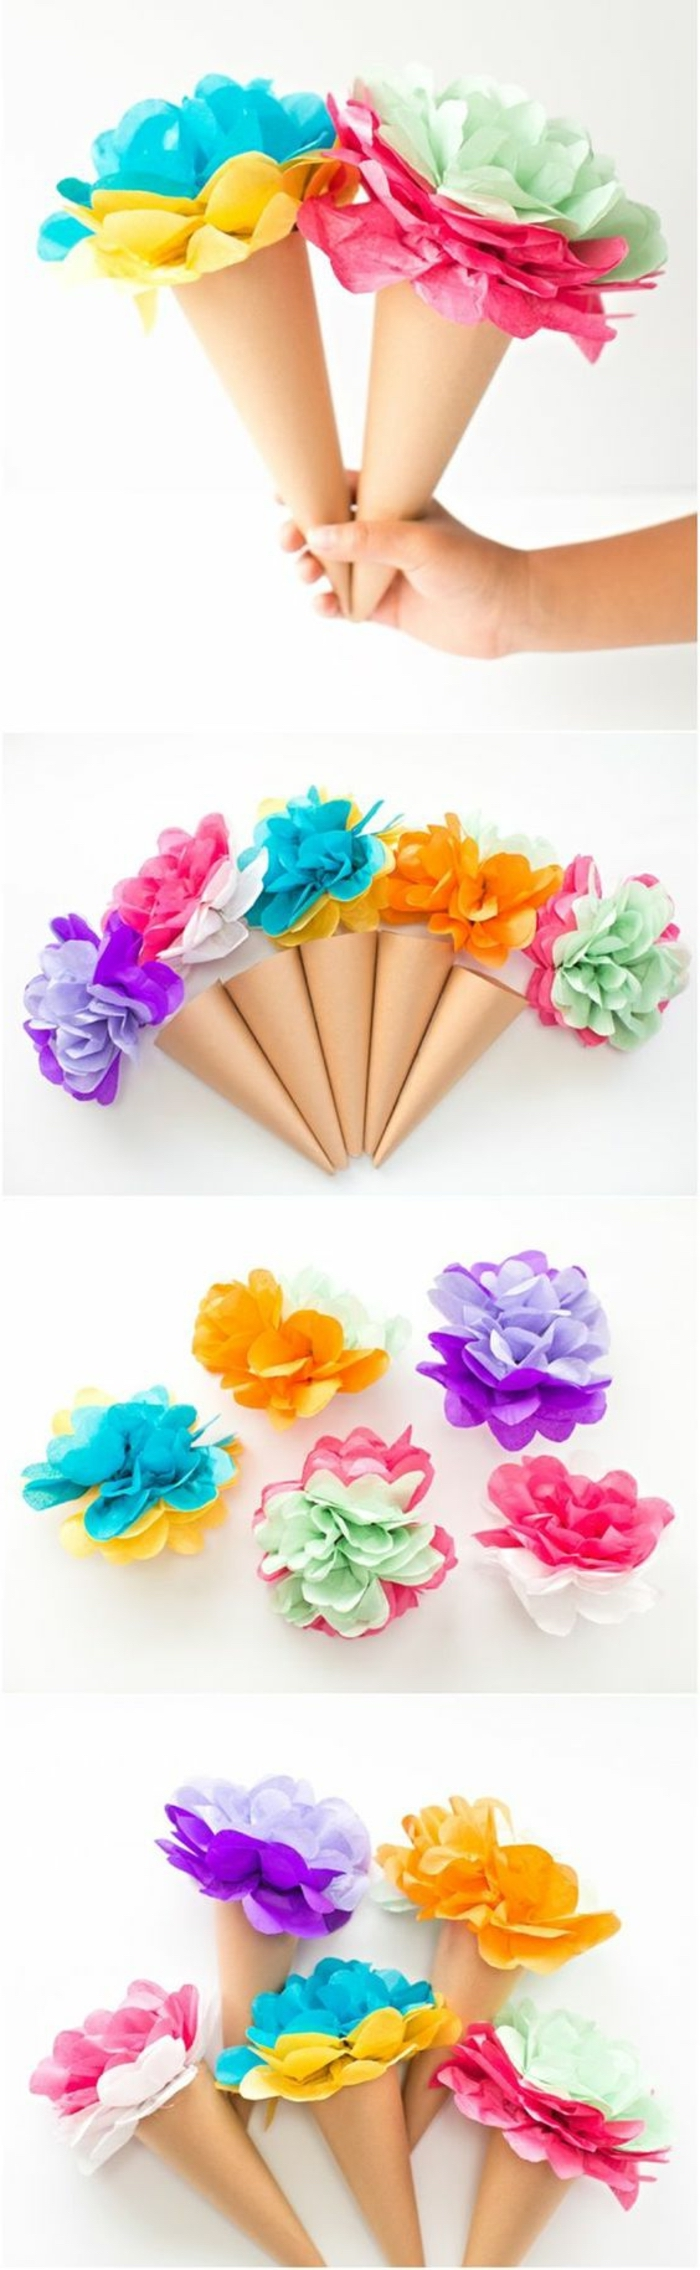 paper cones, indoor group games for kids, colourful flowers, made of paper